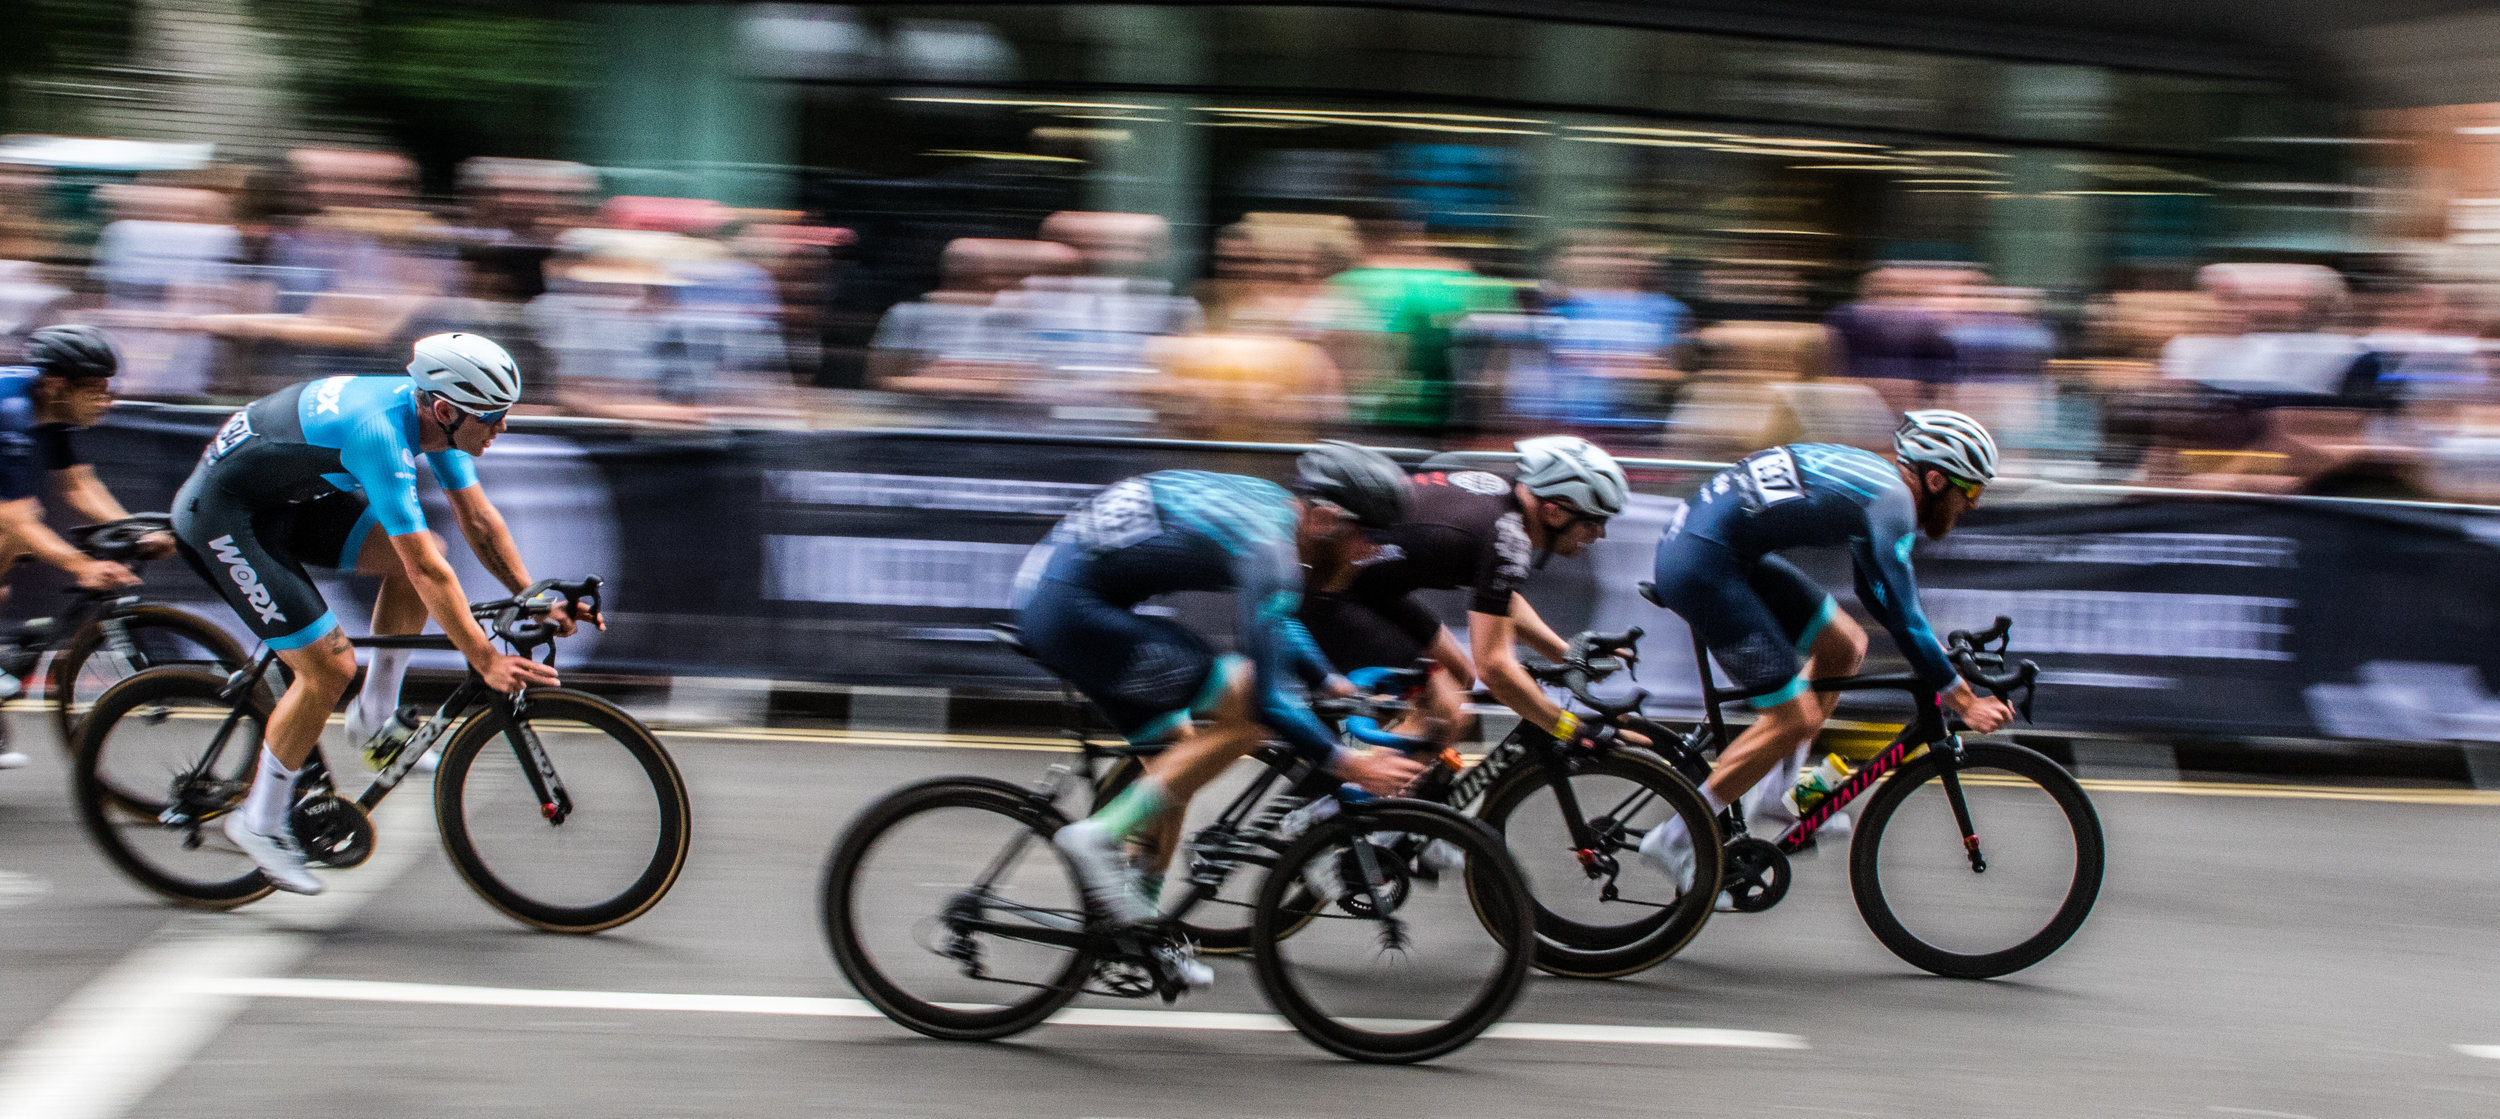 London Nocturne-149.jpg